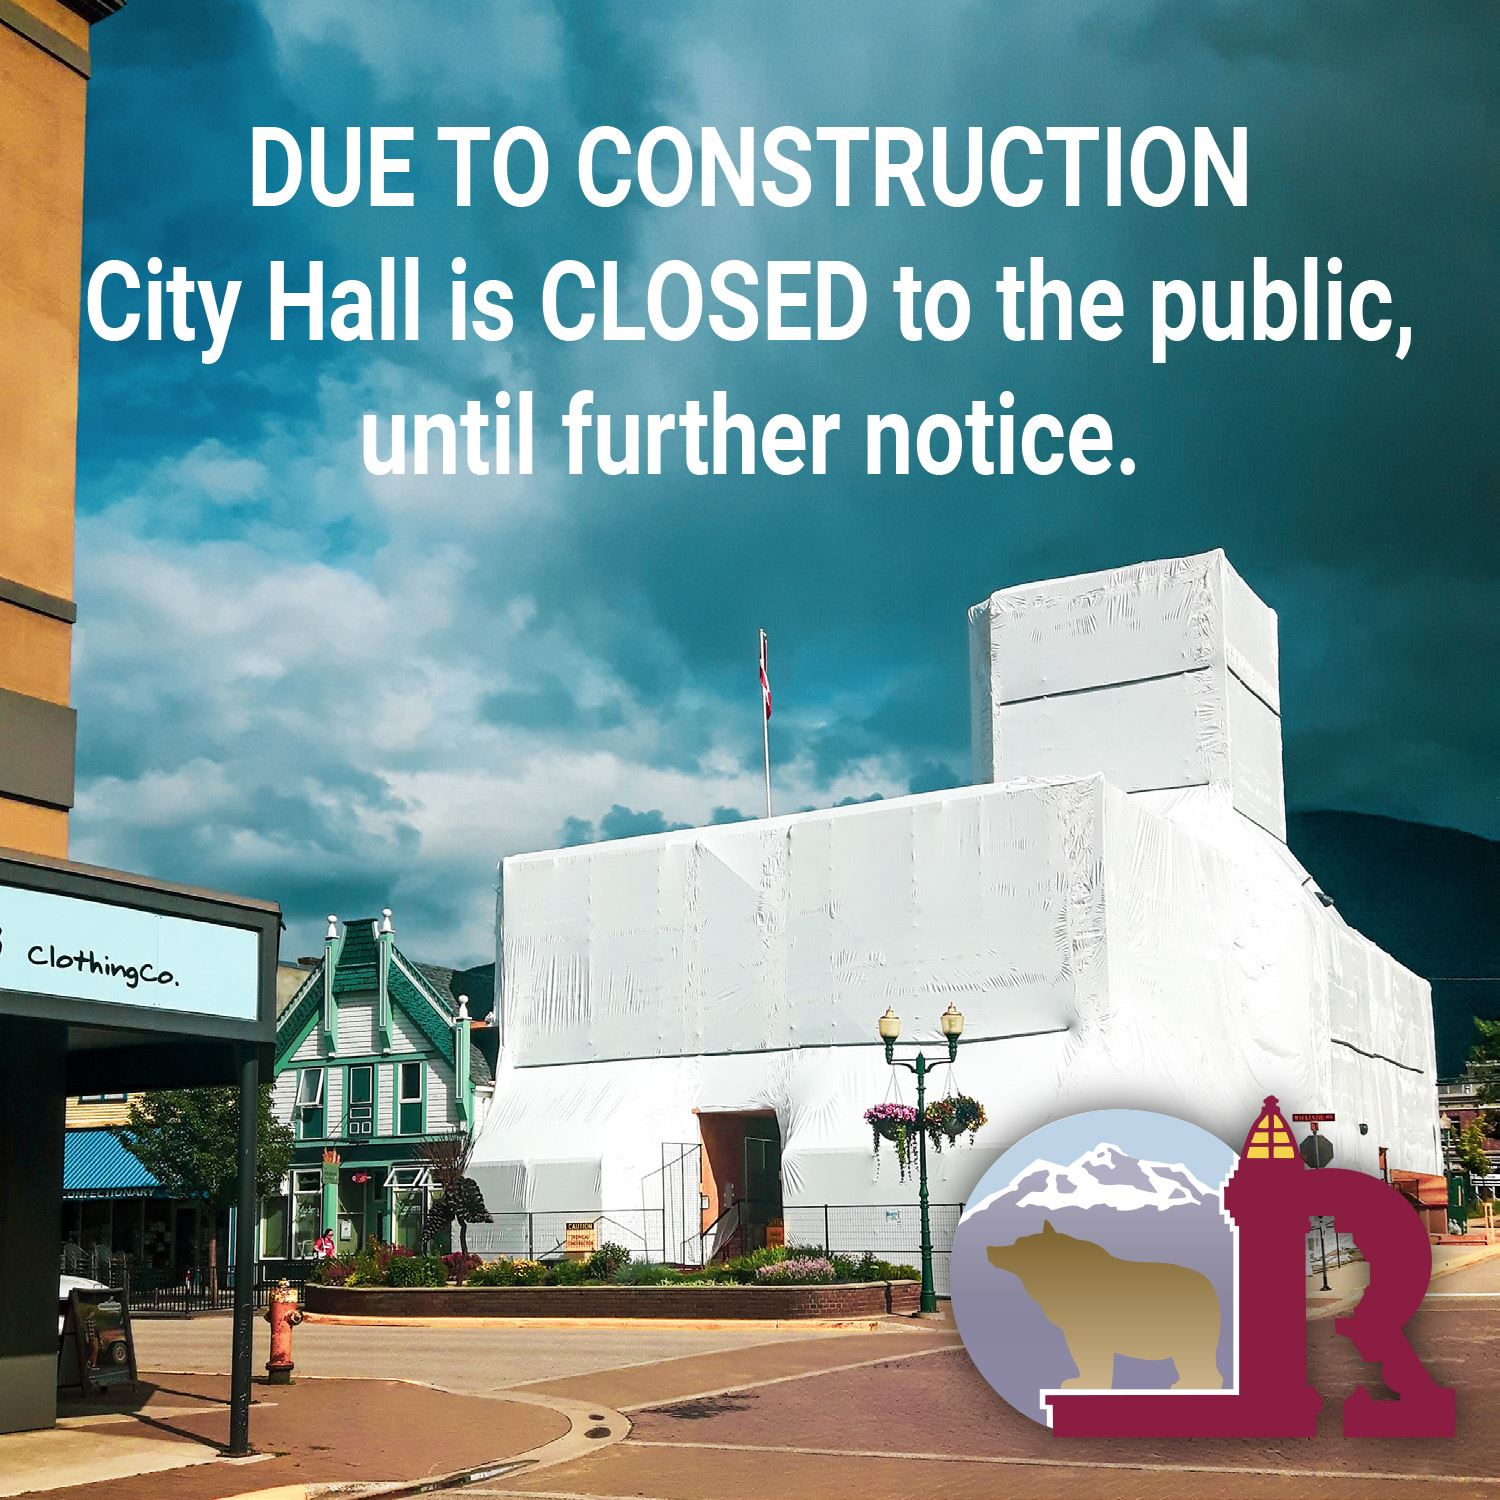 City Hall Closed_Construction